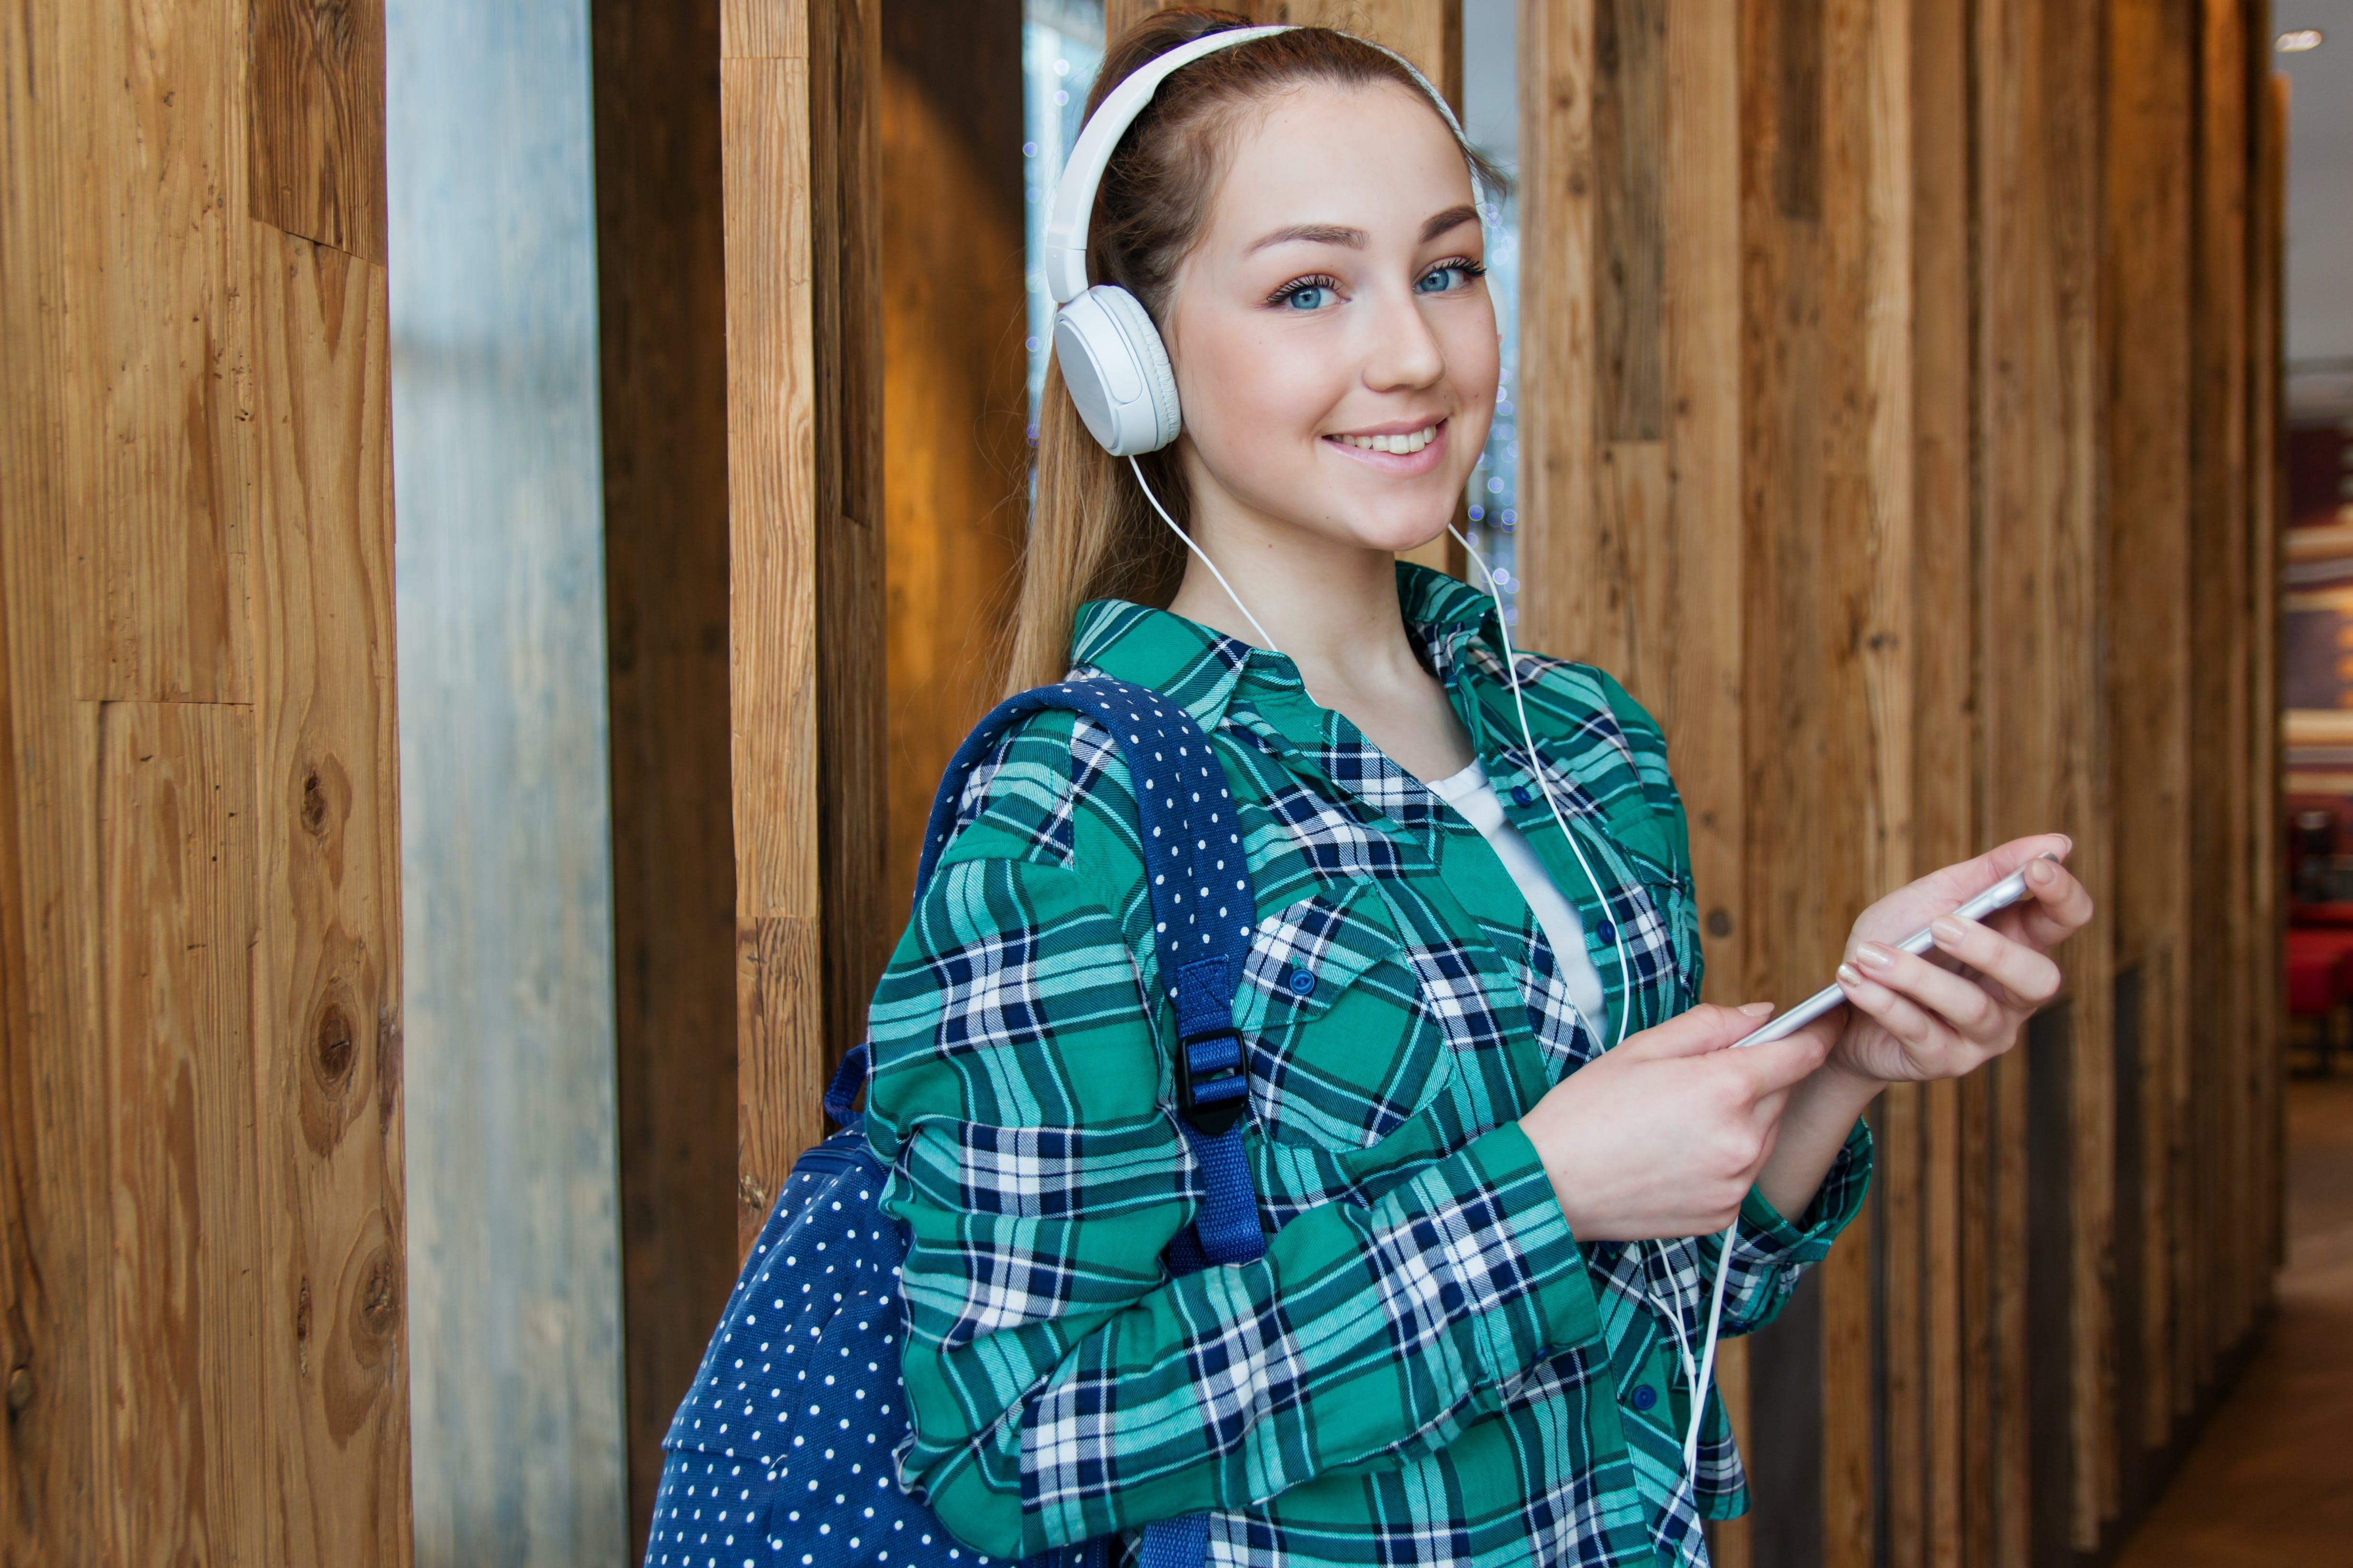 Woman in Teal, White, and Black Plaid Dress Shirt Standing Beside Brown Wall